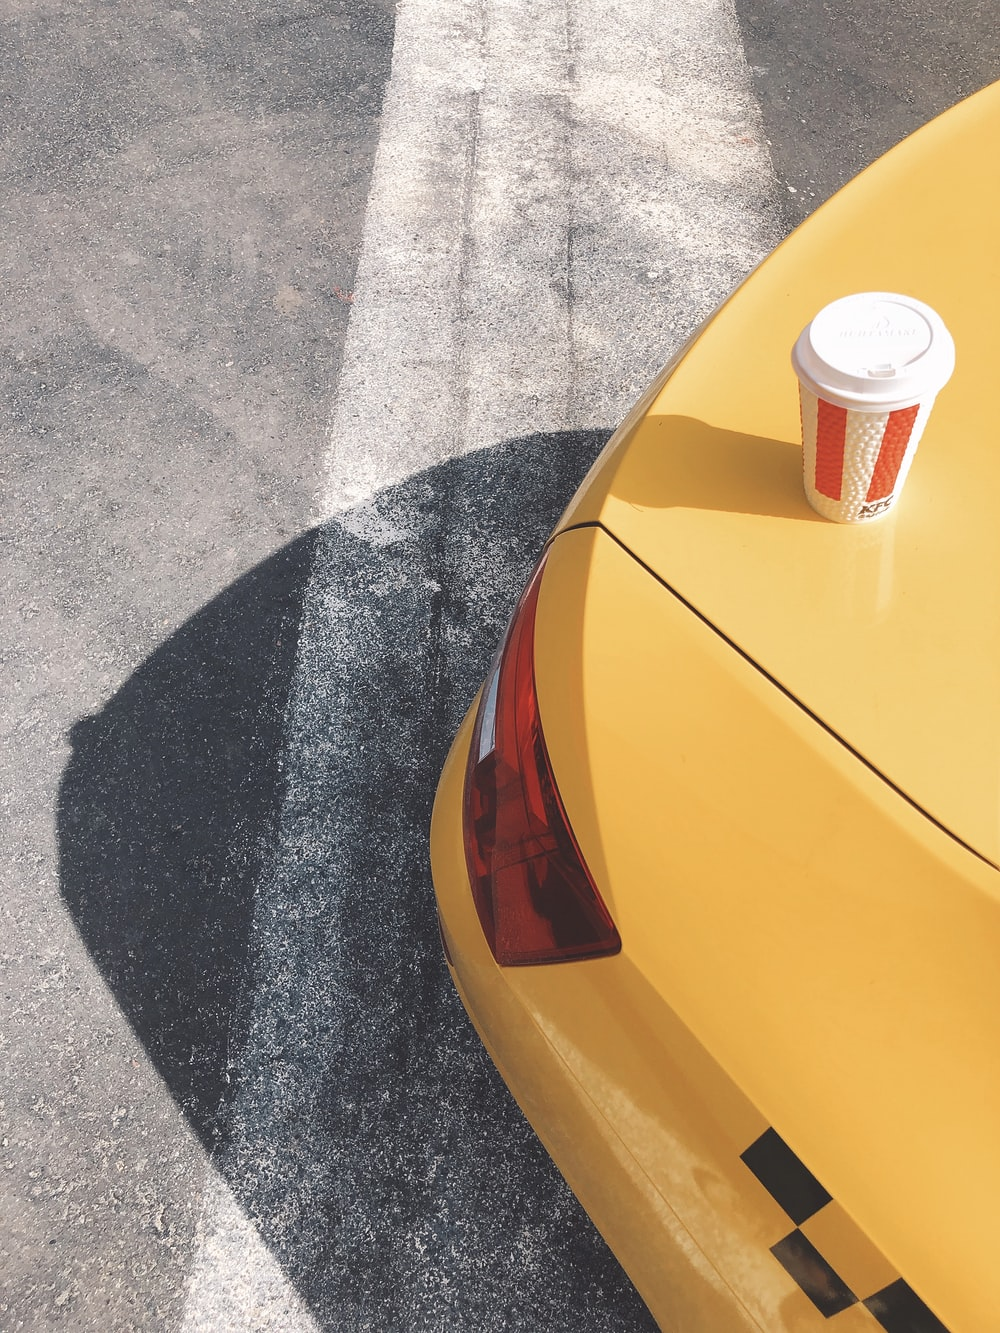 red and white disposable cup on yellow car hood